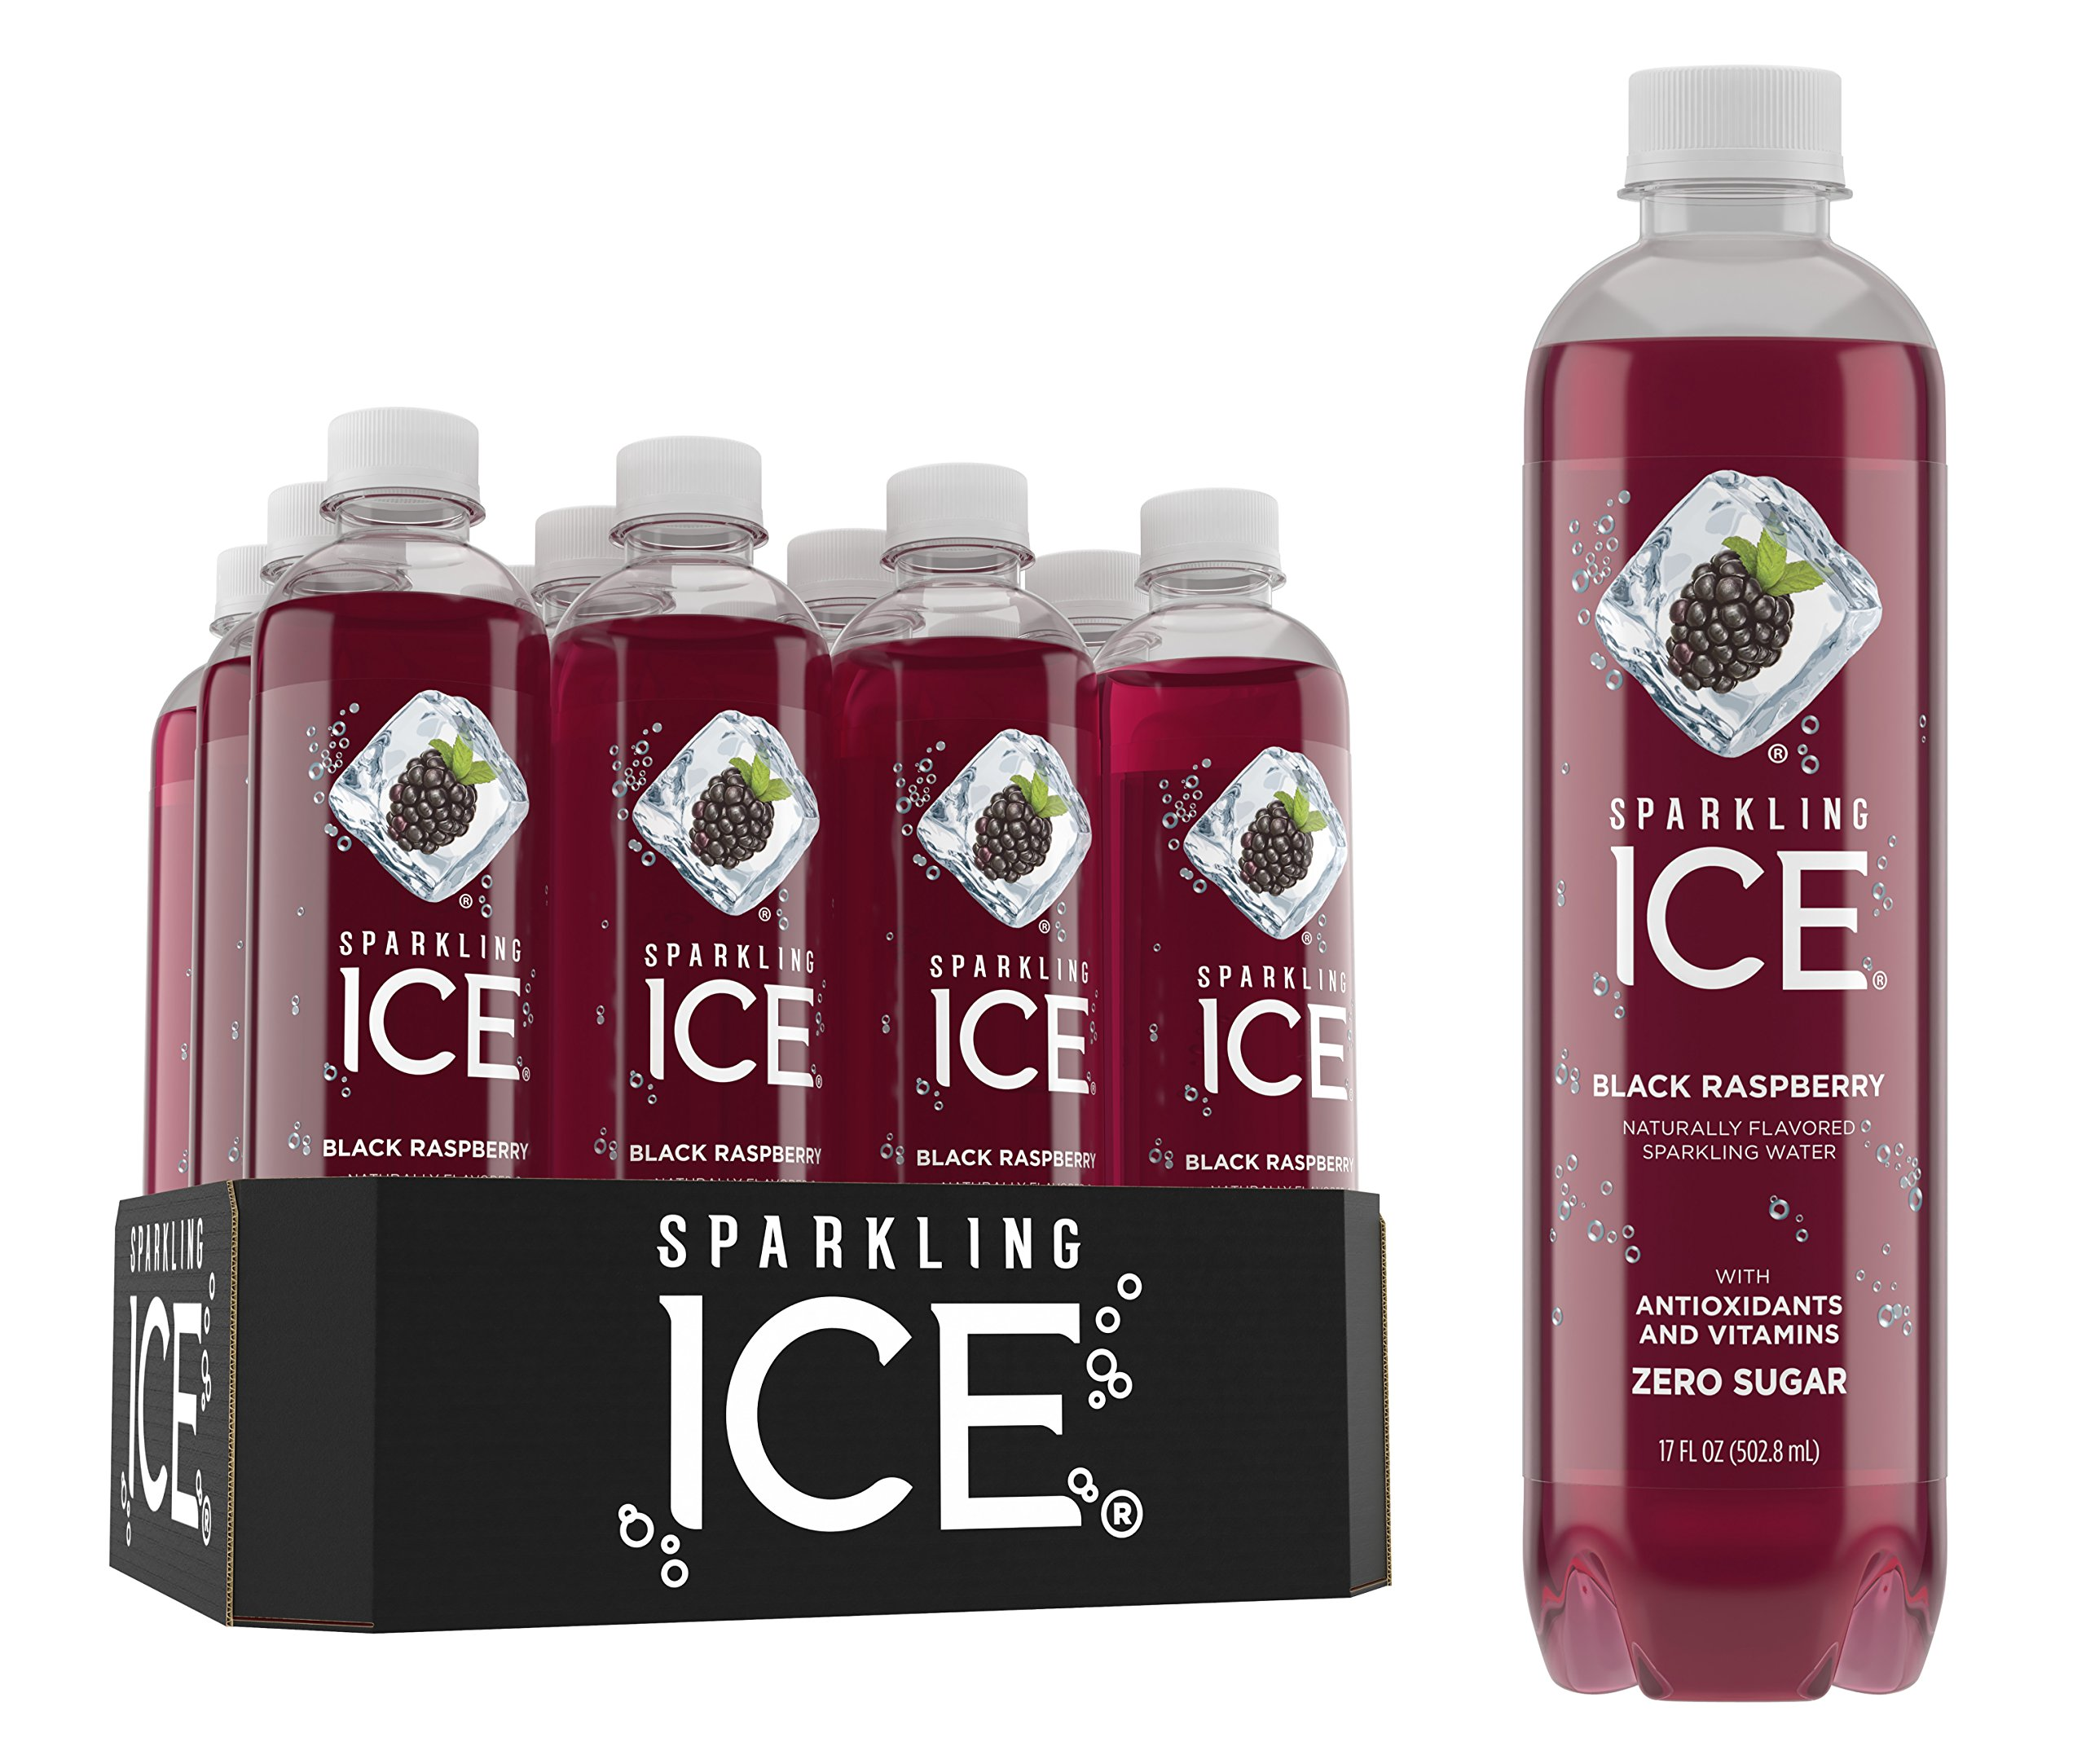 Sparkling Ice Black Raspberry Sparkling Water with